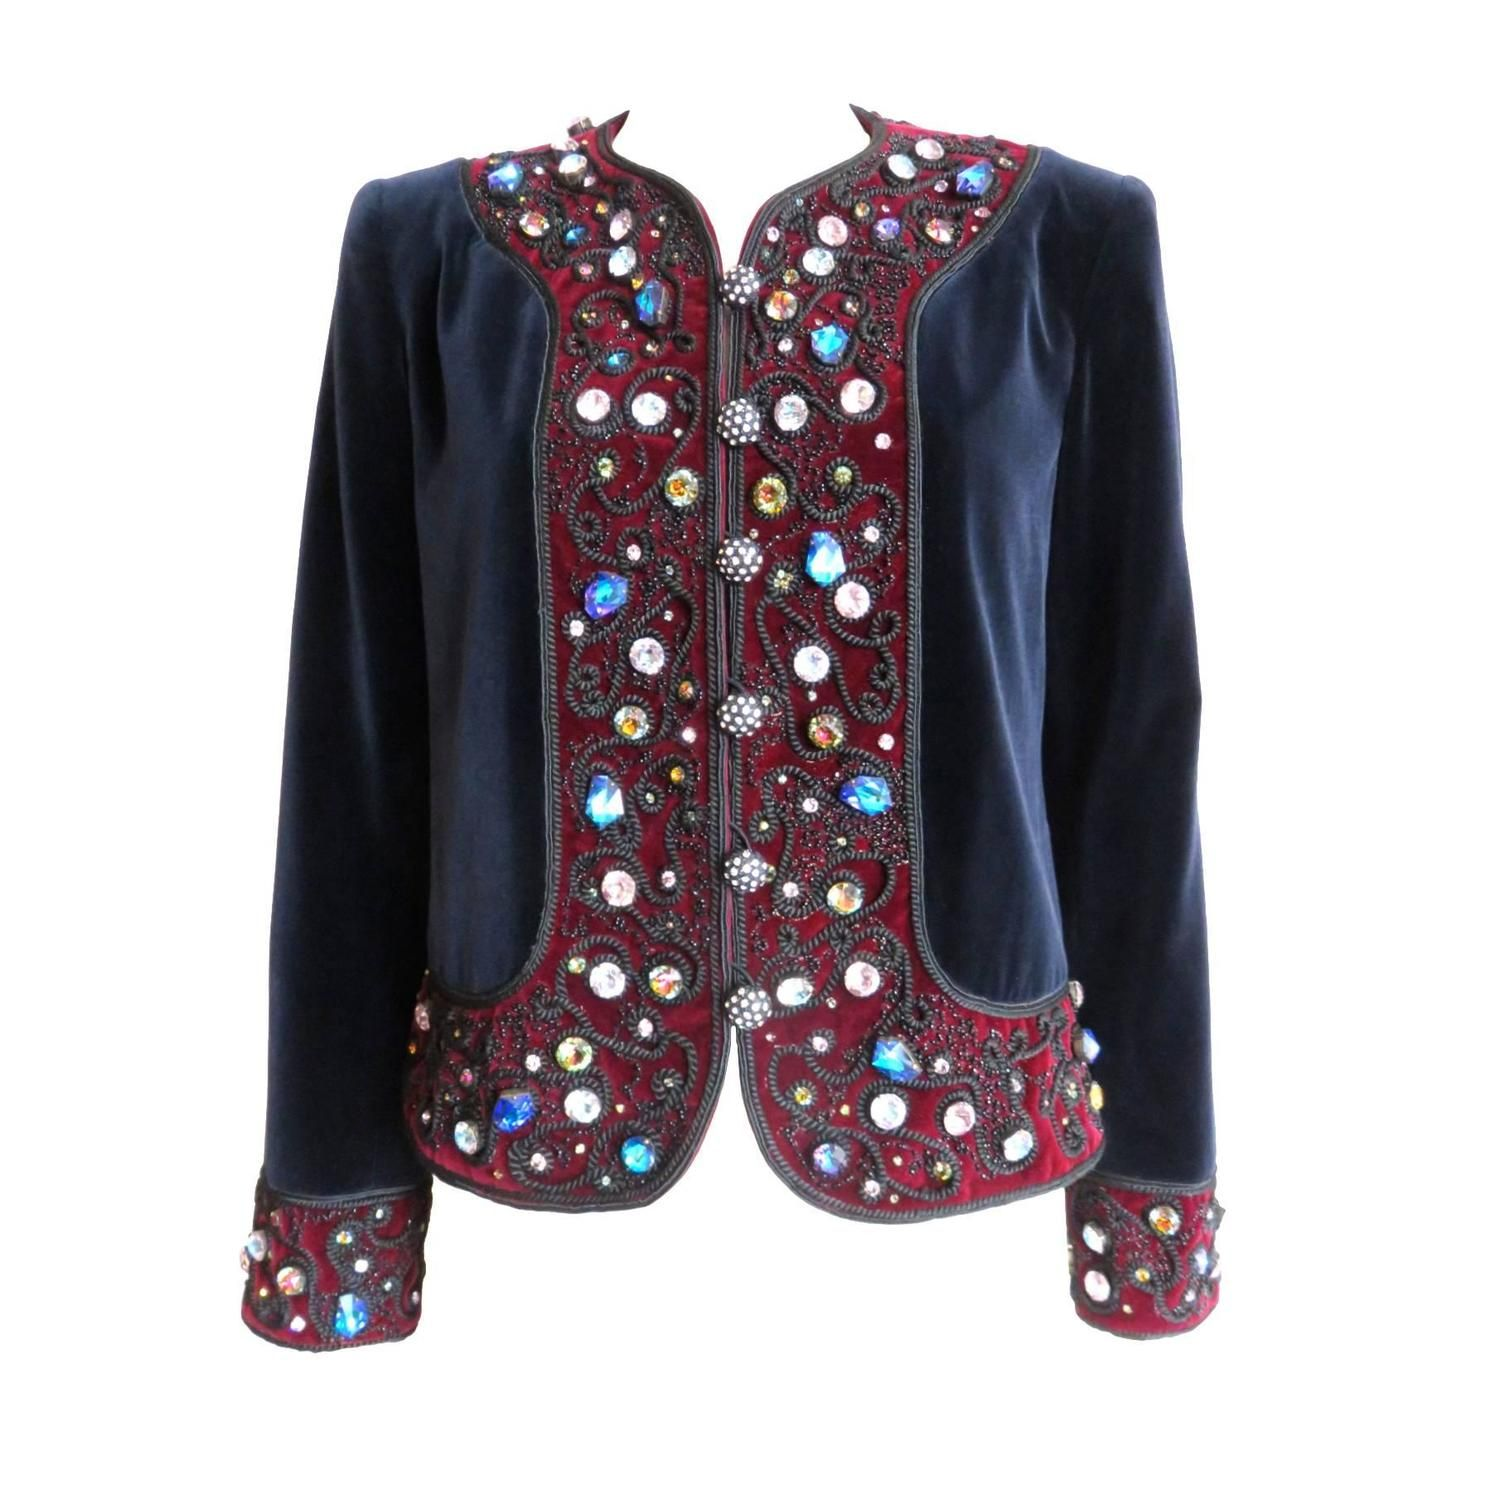 bf20e78a7ea 1984 YVES SAINT LAURENT Jeweled evening jacket YSL | From a collection of  rare vintage jackets